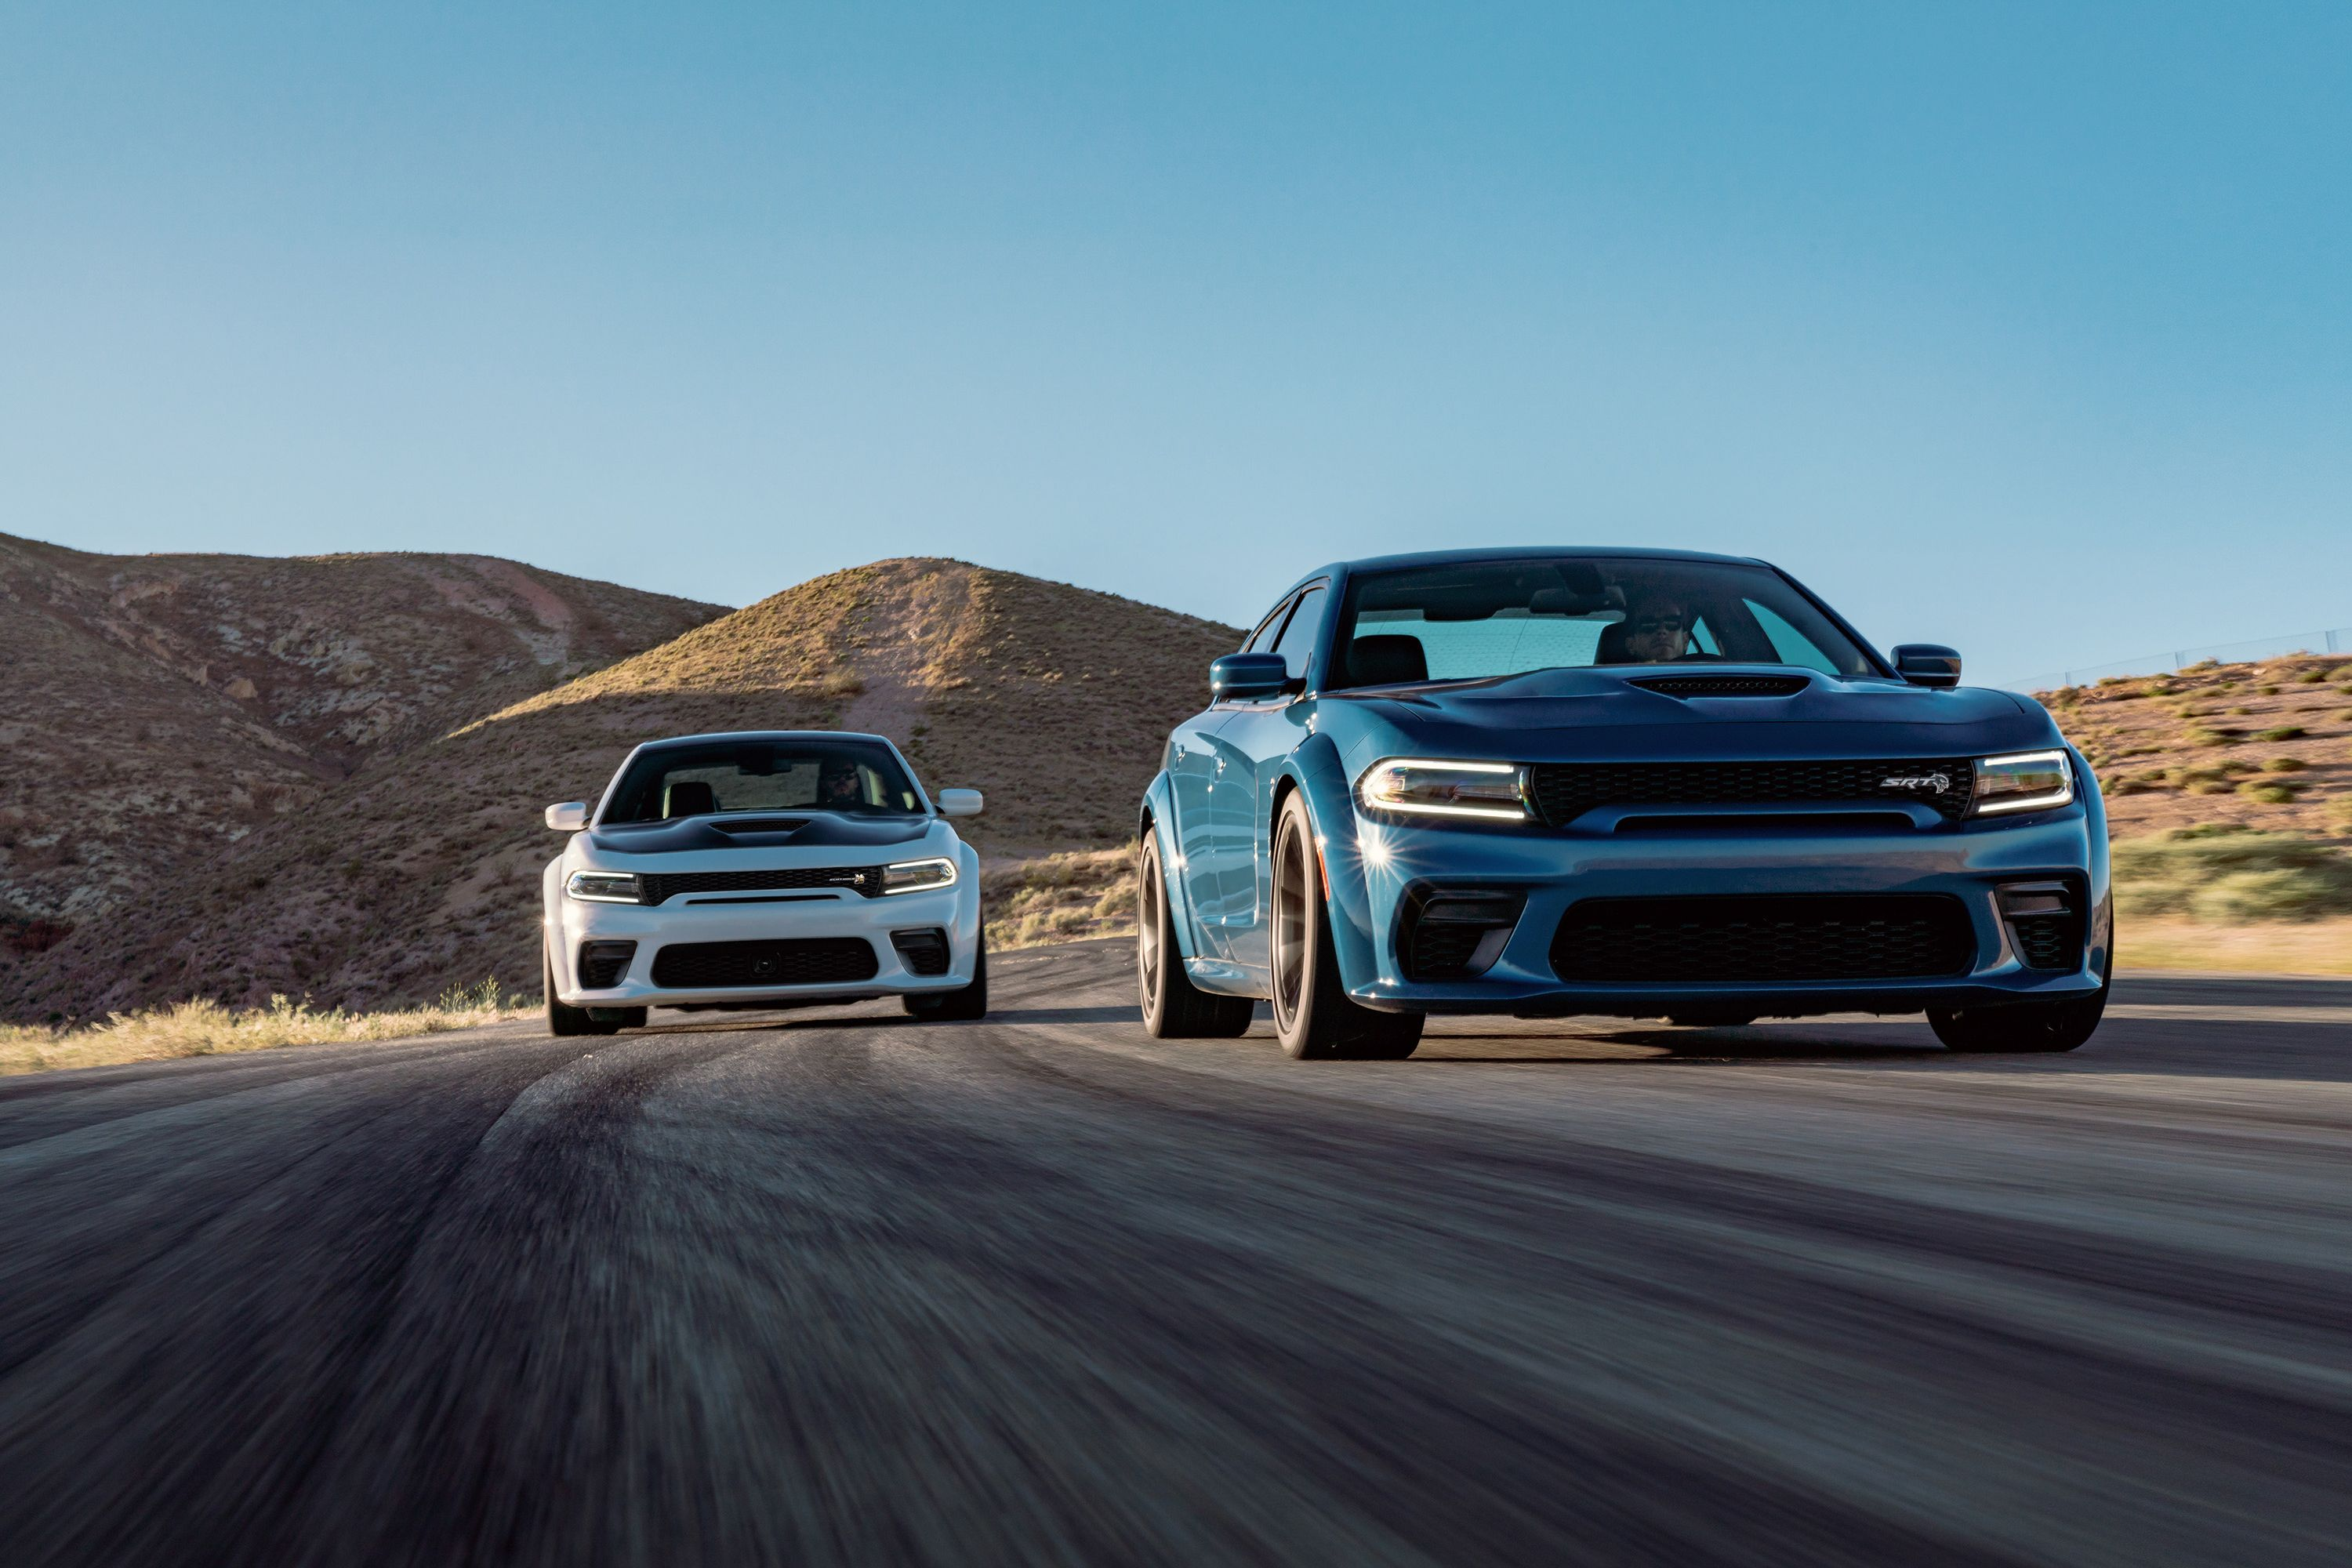 The 2020 Dodge Charger Hellcat Widebody - Looks Meaner